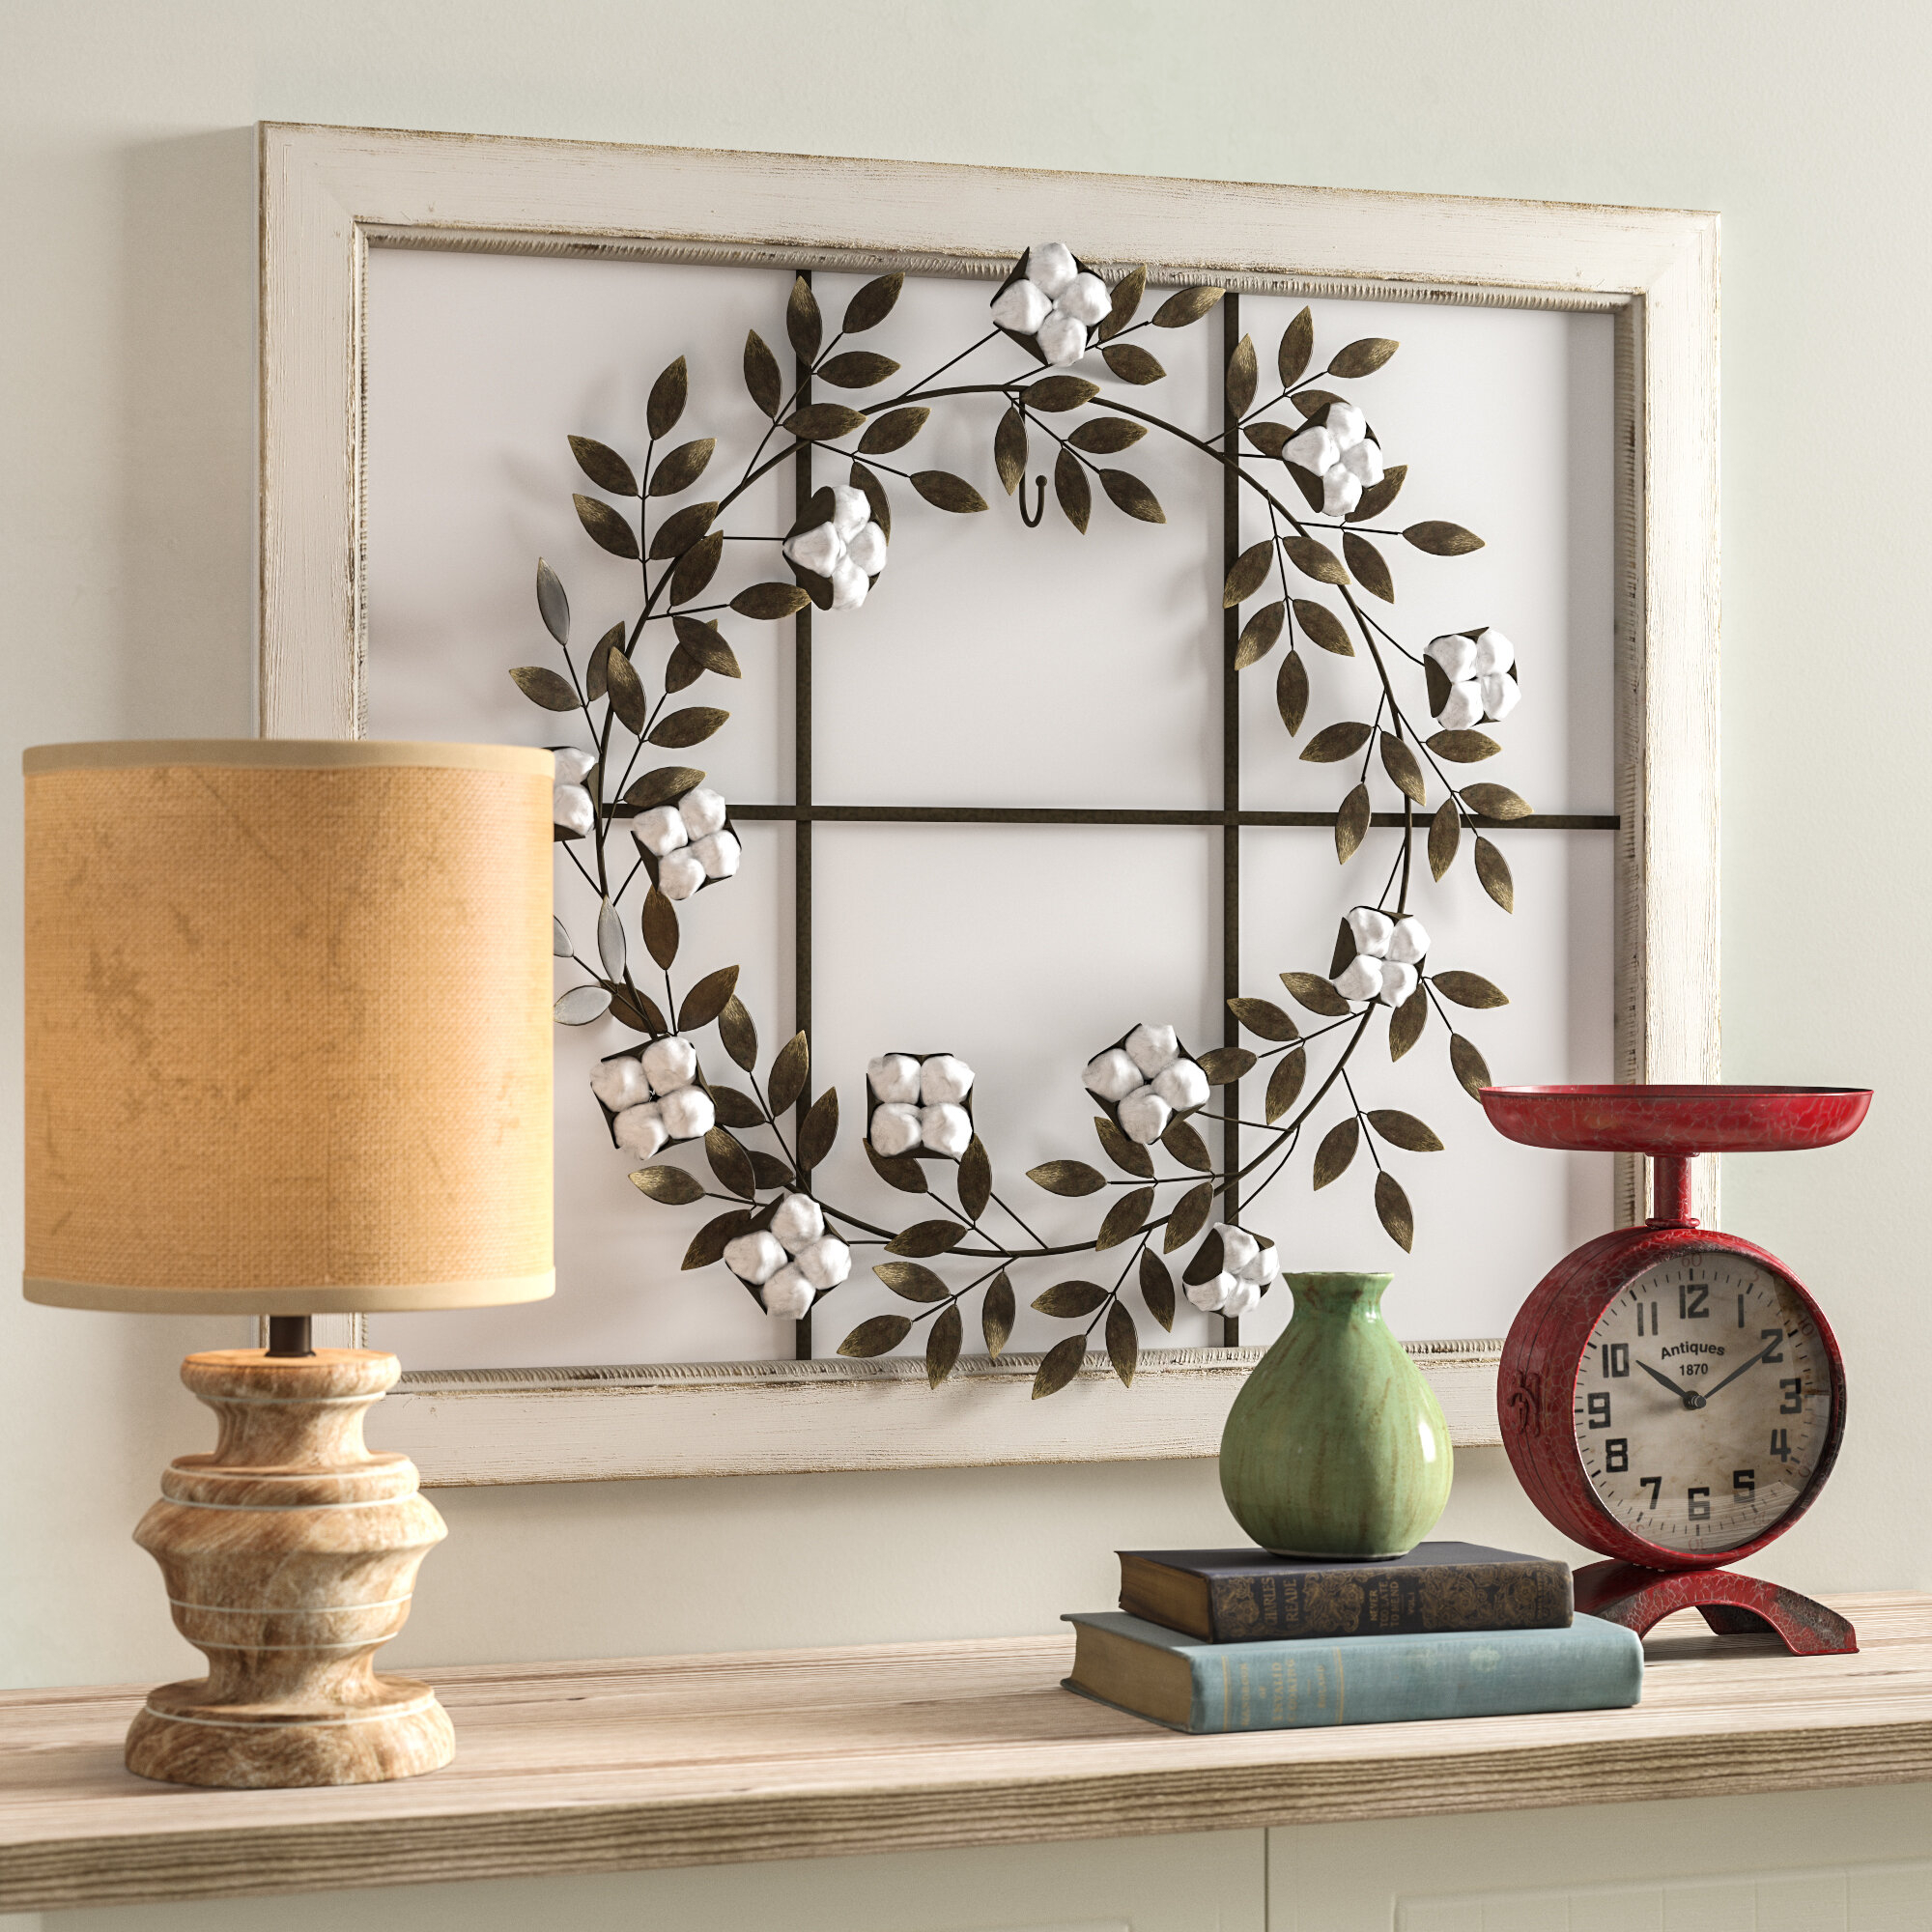 Wayfair With Regard To Best And Newest 1 Piece Ortie Panel Wall Decor (View 19 of 20)